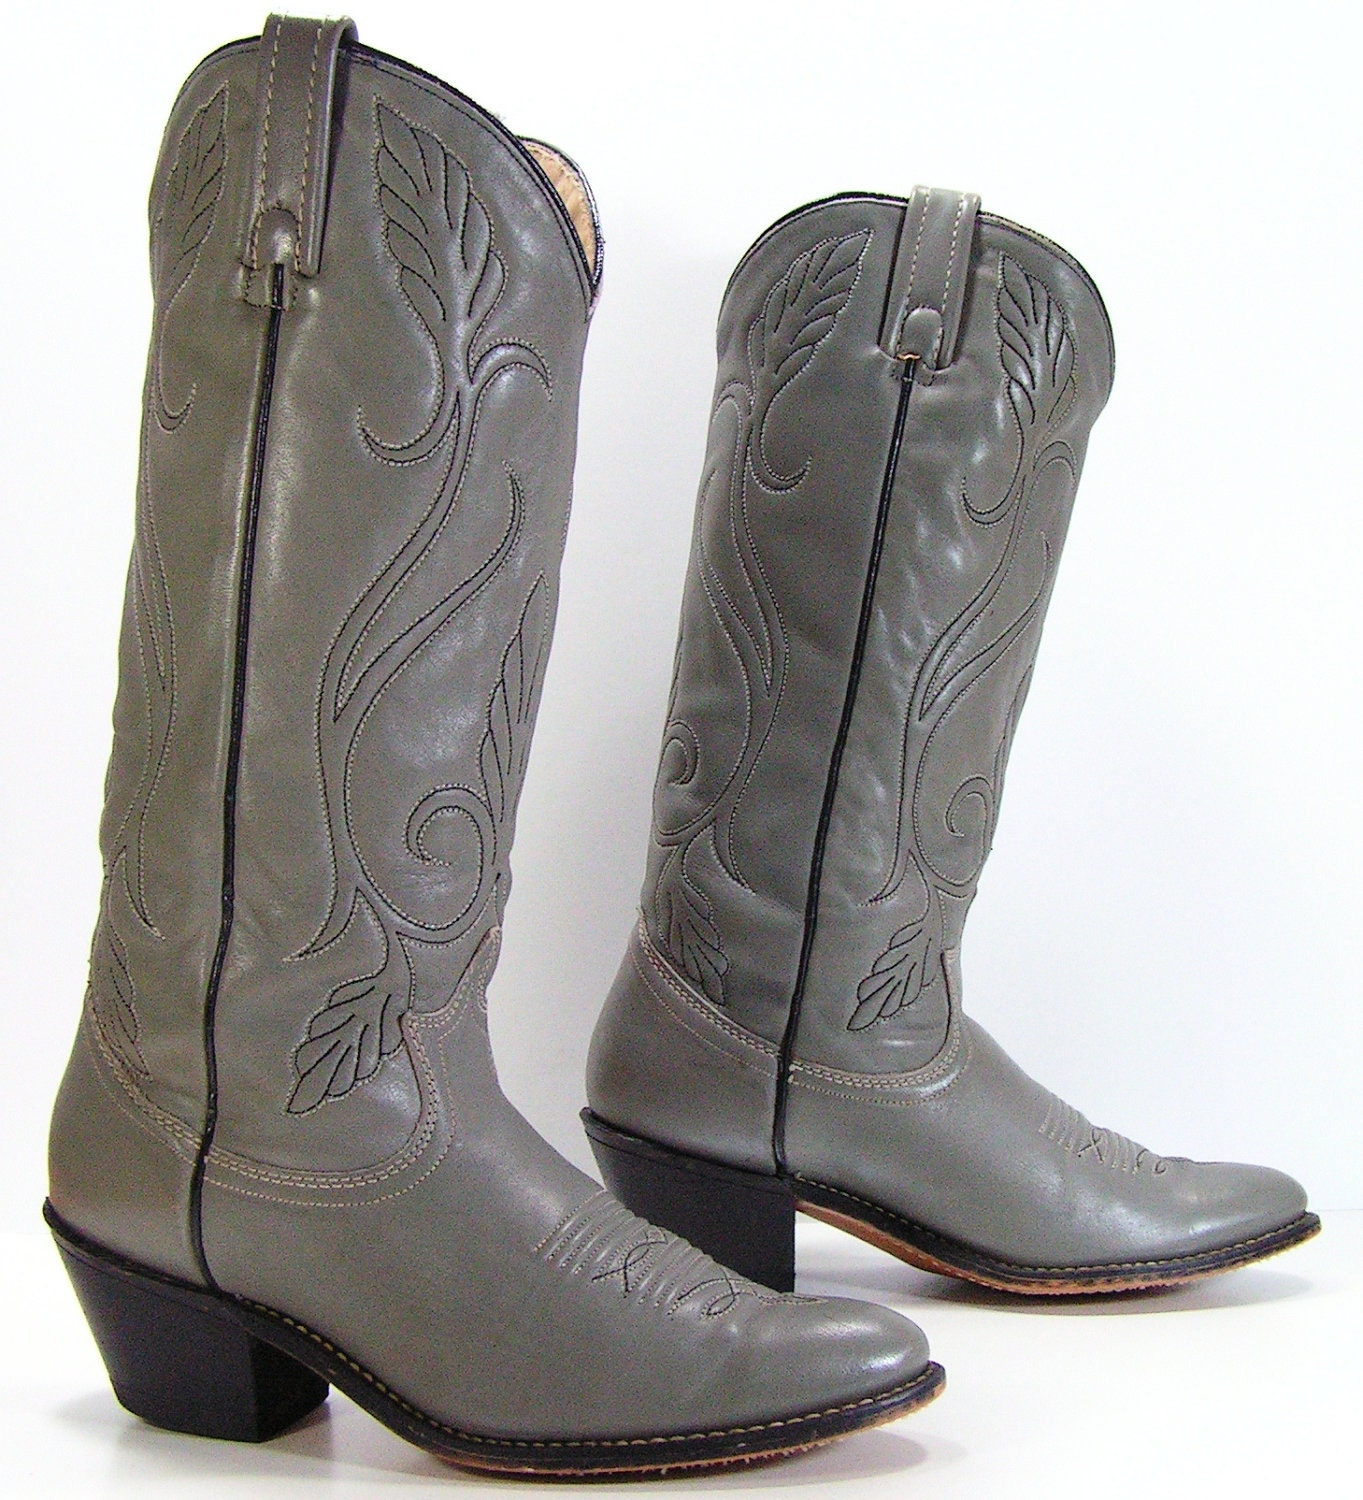 cowboy boots womens 7 5 n gray western by vintagecowboyboots